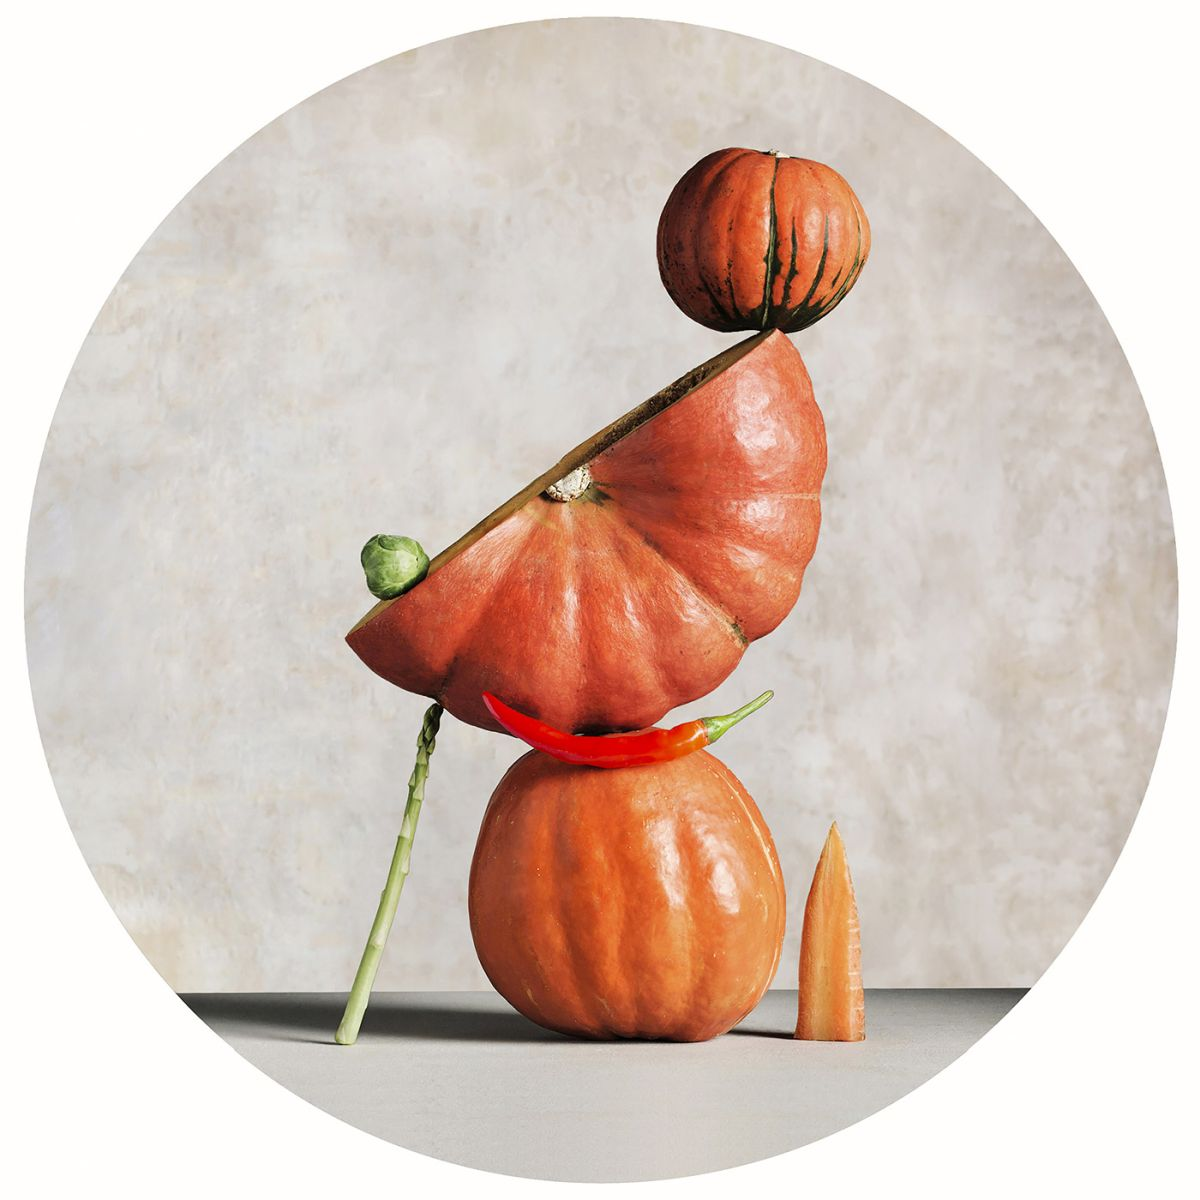 artful still life photography pumpkin chang ki chung